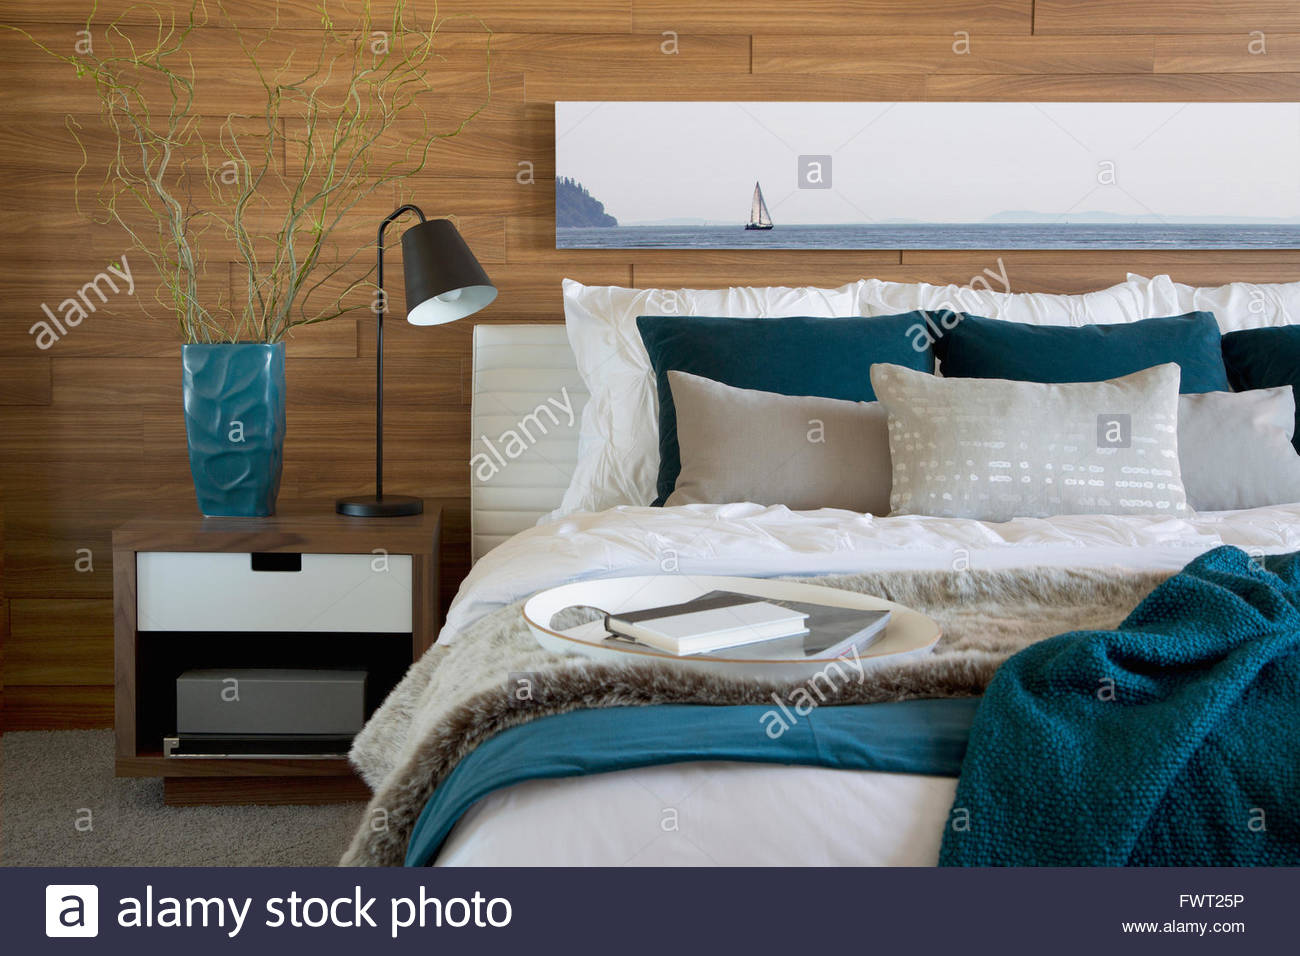 Teal and white accents in bedroom Stock Photo: 101946818 - Alamy